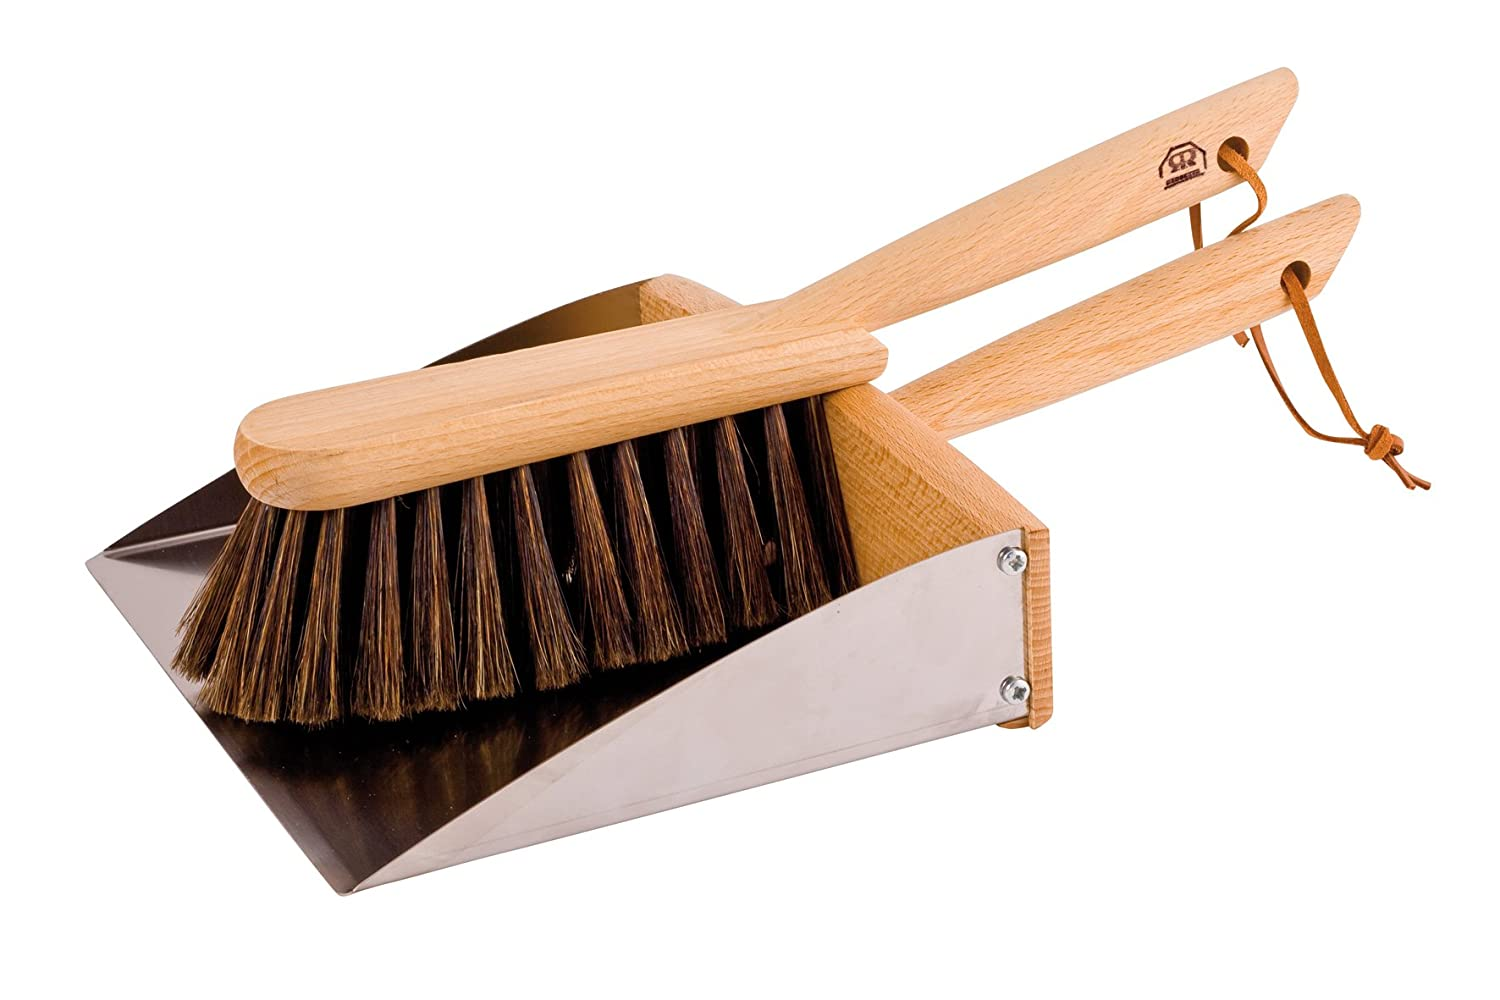 Amazon.com Redecker Horsehair Hand Brush and Dust Pan Set with Oiled Beechwood Handles with Magnet 14-1/8-Inches Home u0026 Kitchen  sc 1 st  Amazon.com & Amazon.com: Redecker Horsehair Hand Brush and Dust Pan Set with ...